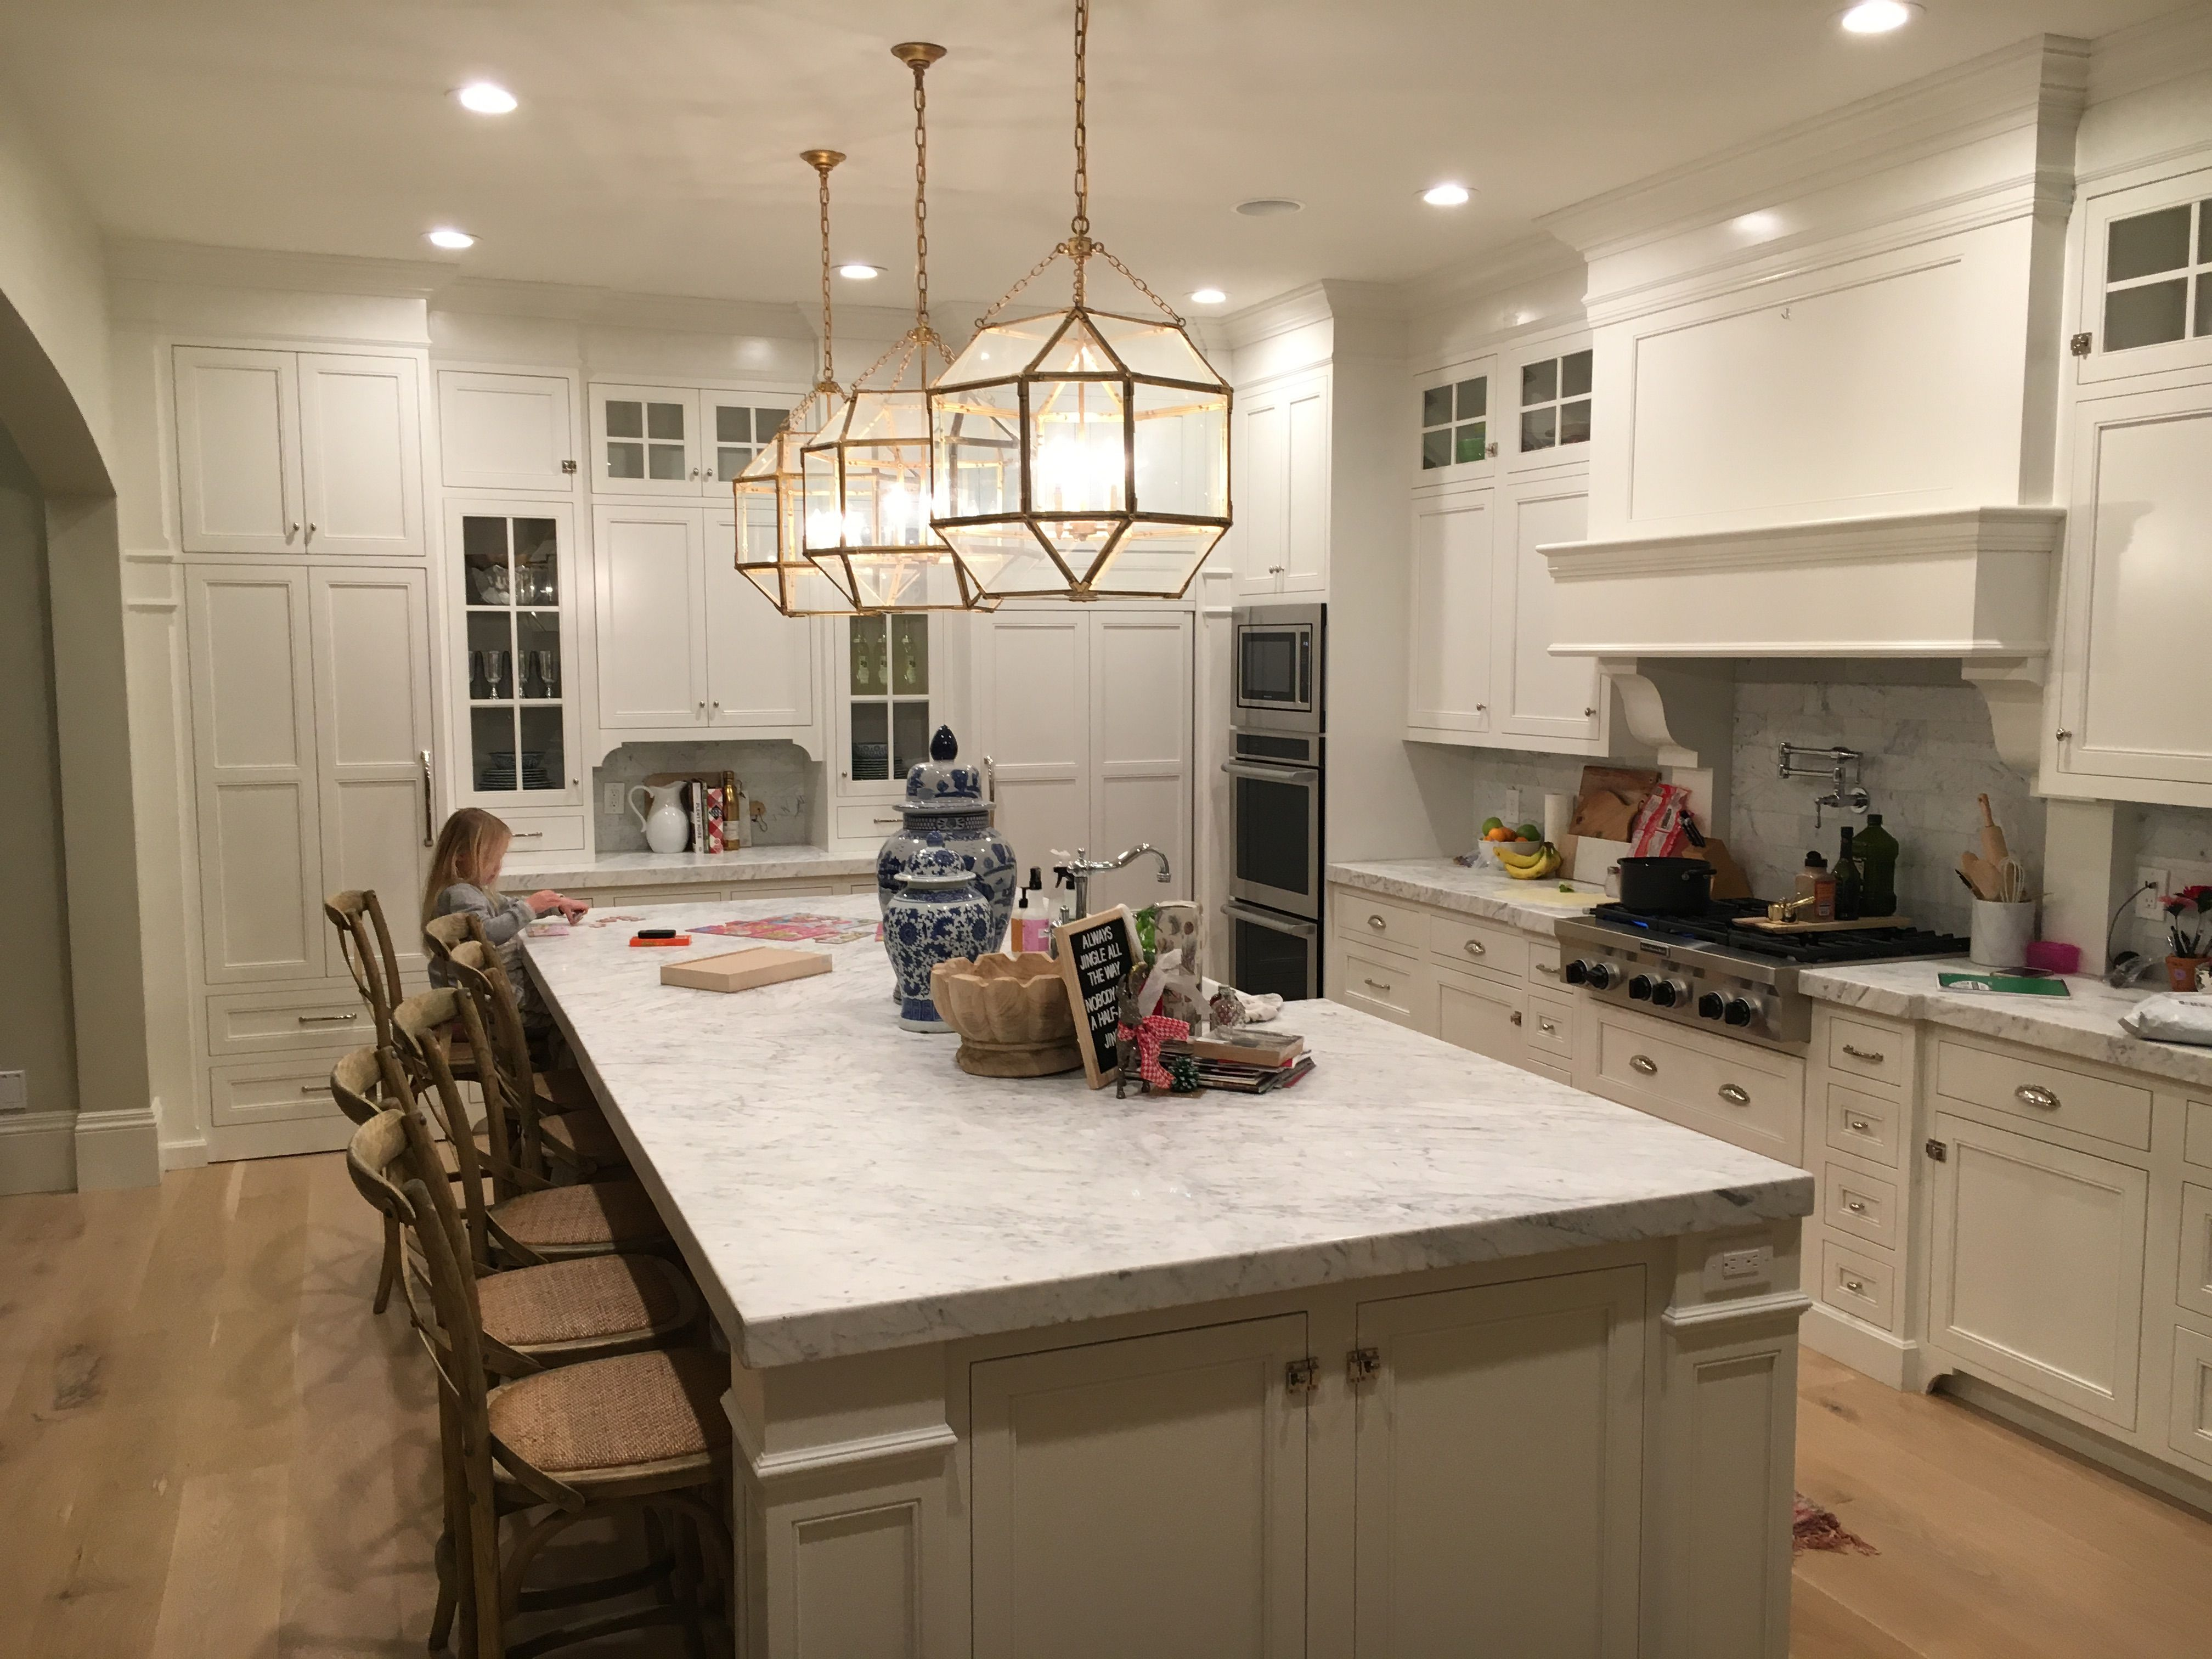 Big with a large island. (With images) | Kitchen remodel ...